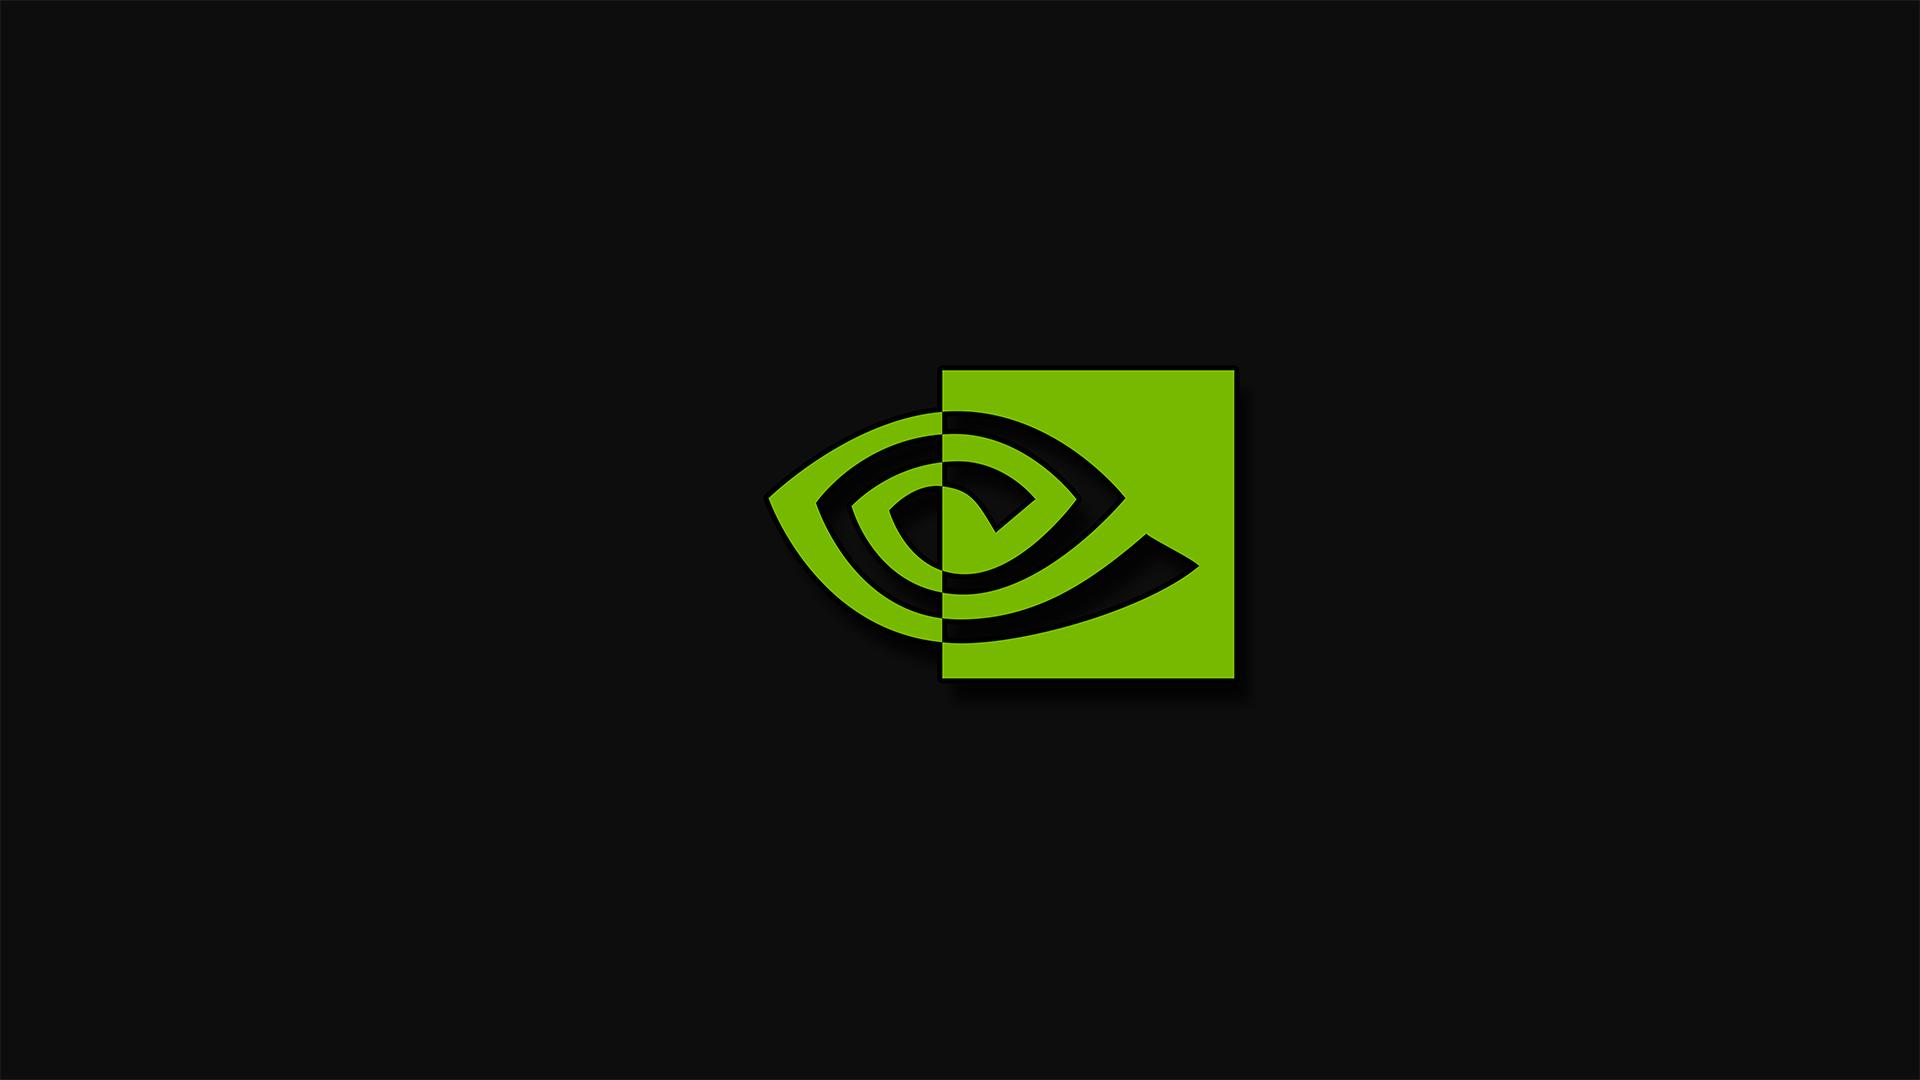 nvidia wallpaper 1080p red - photo #29